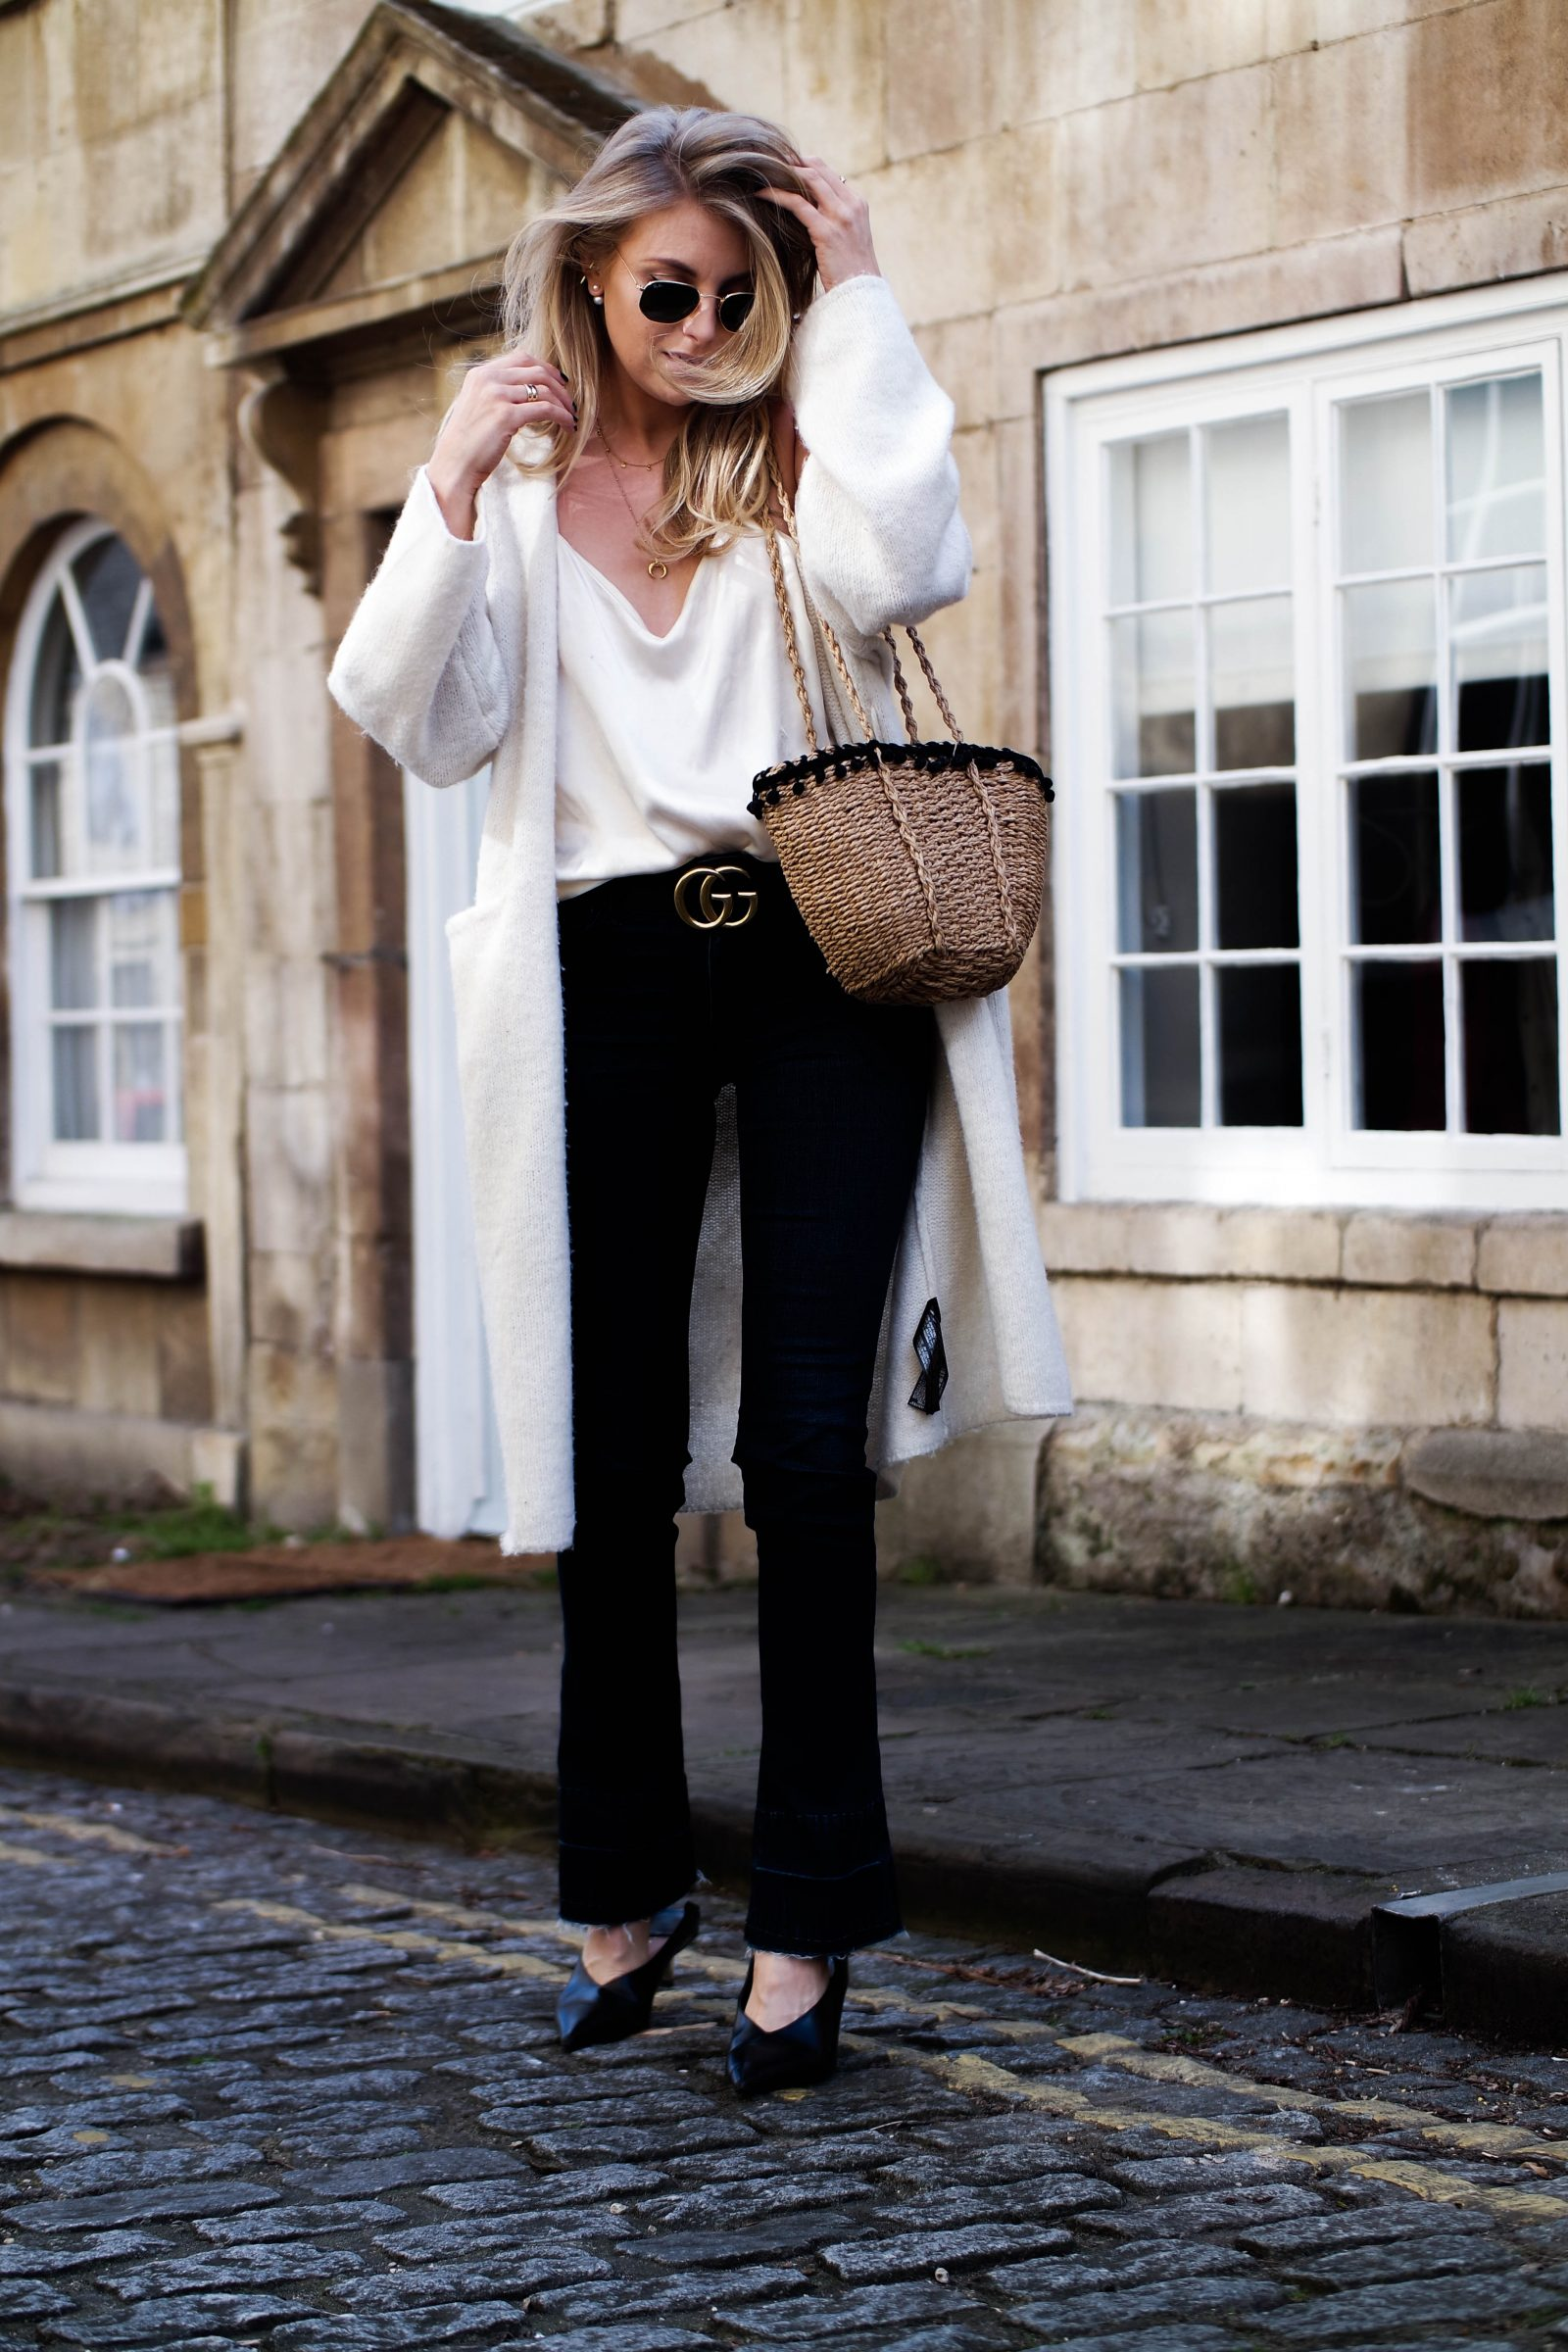 The New Denim - How To Wear Flares - Joes Jeans Mini Flares